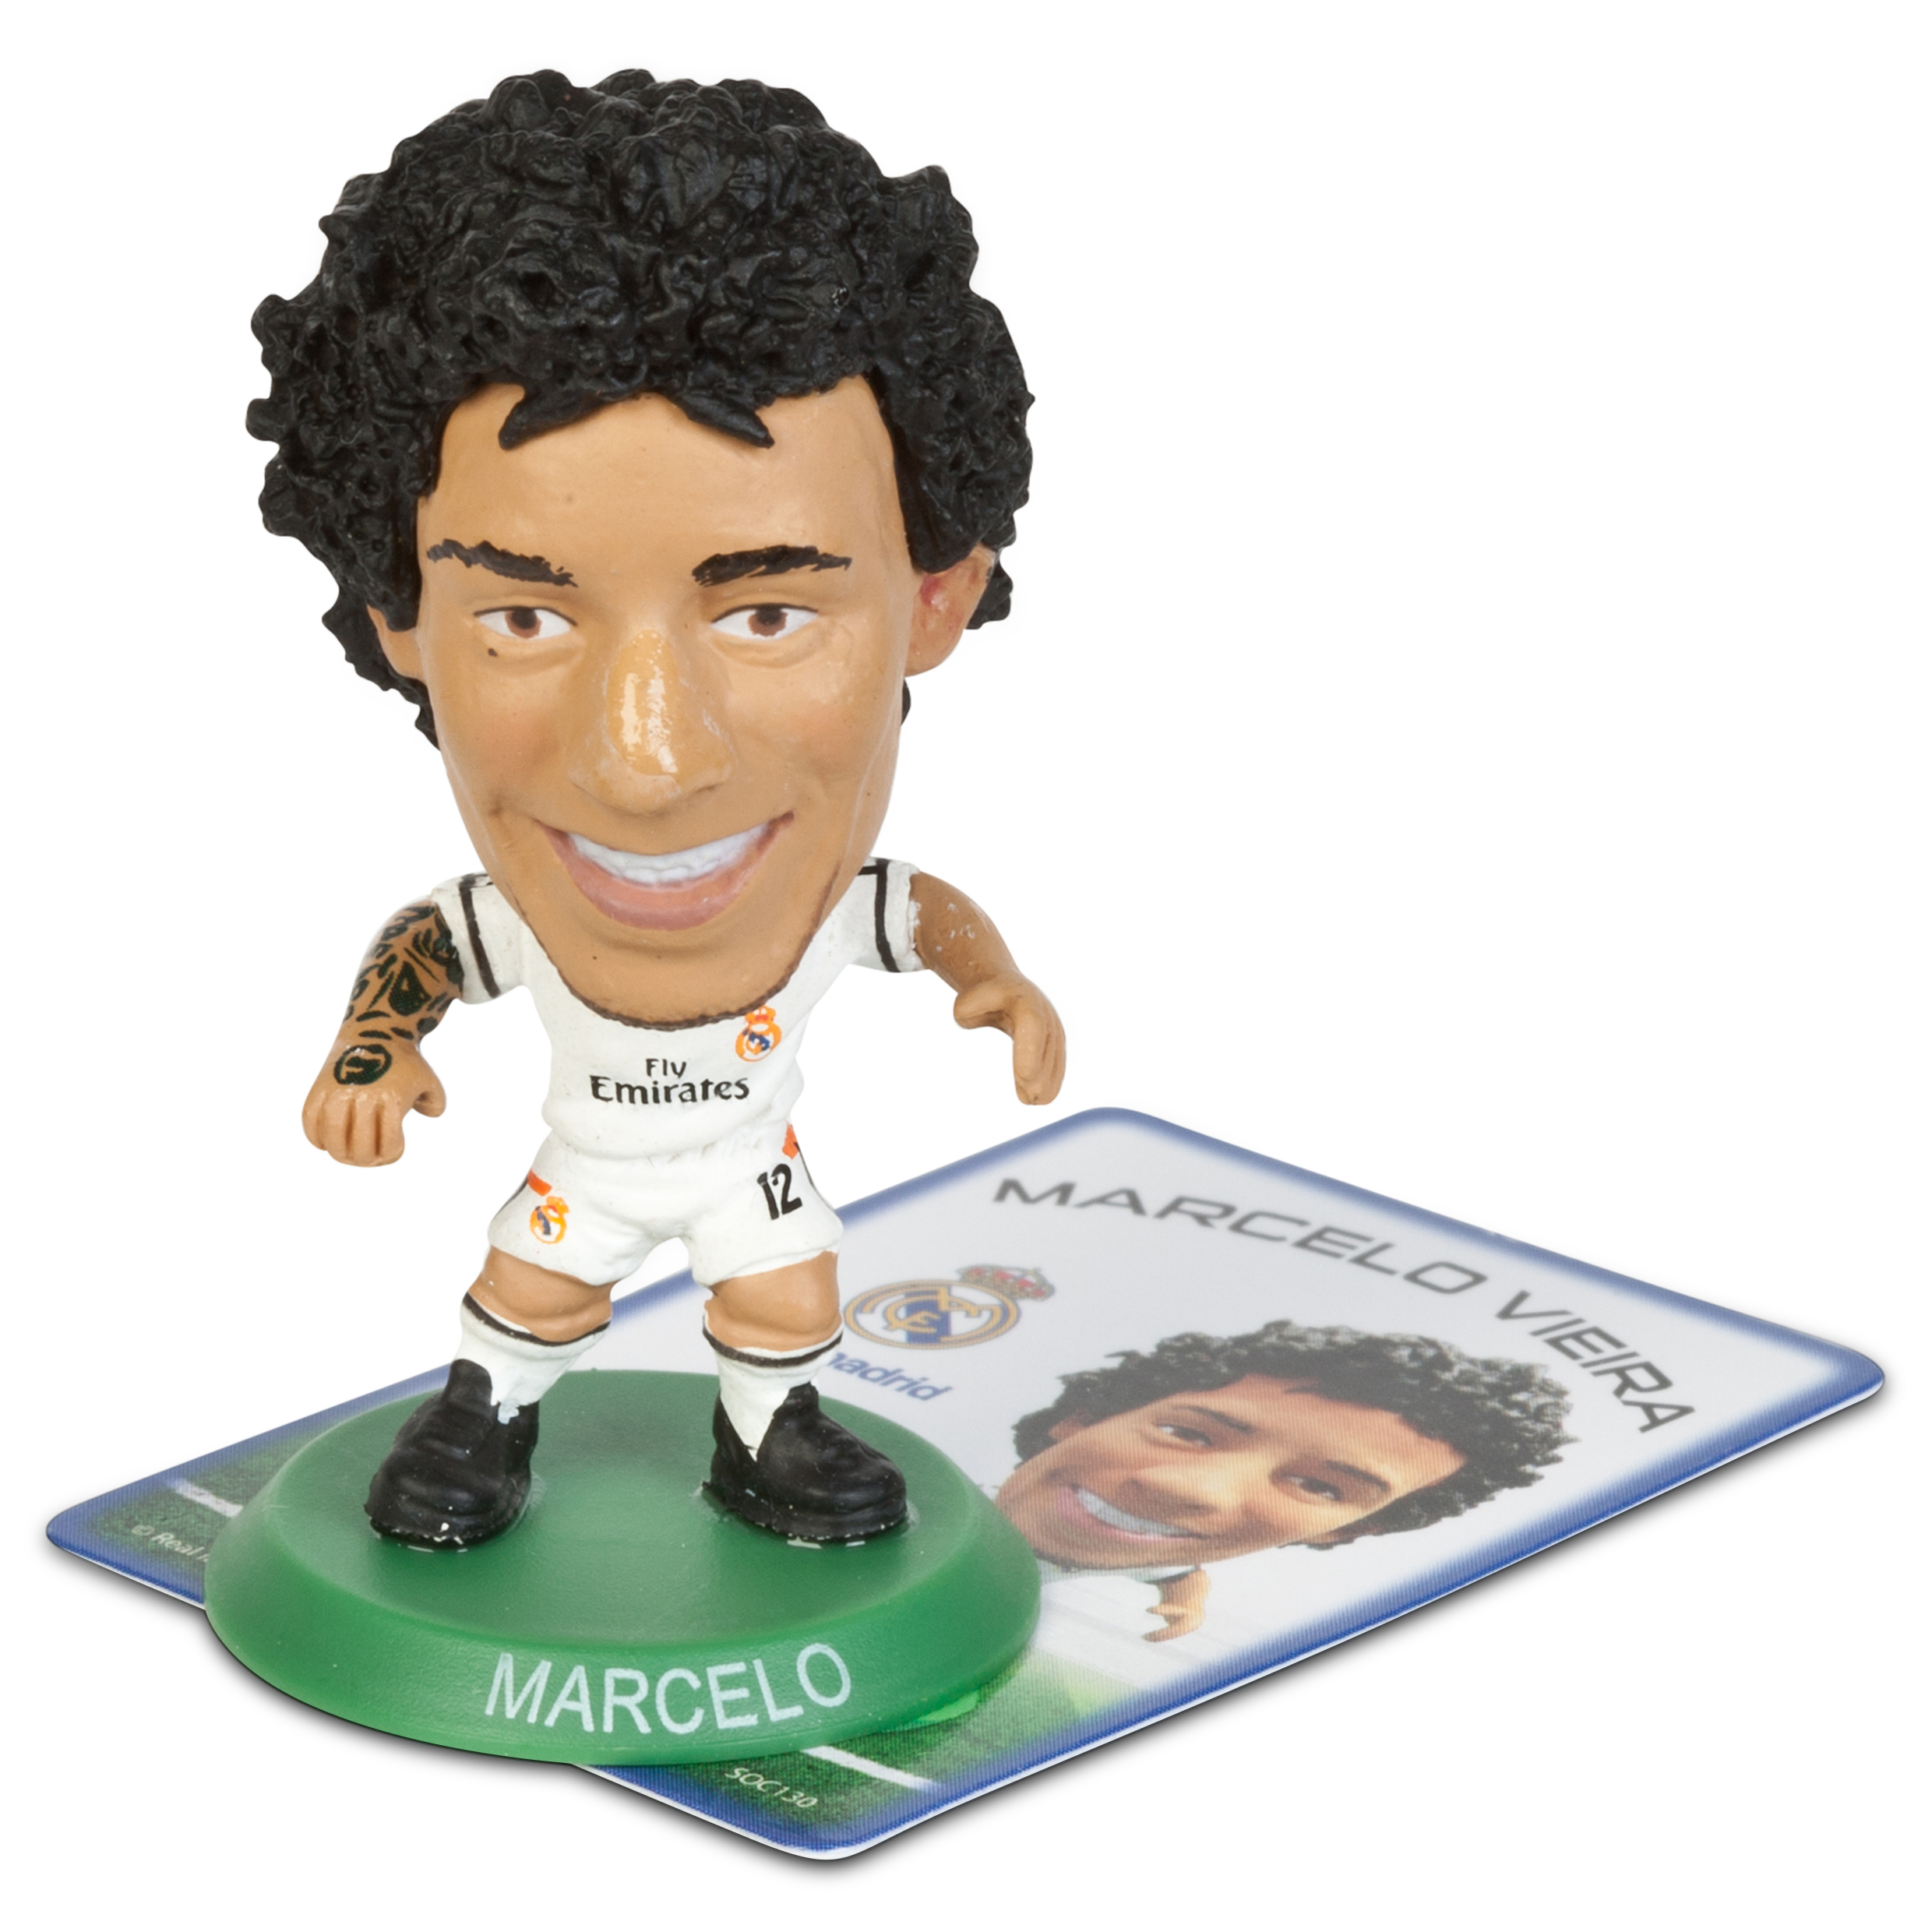 Real Madrid Marcelo Vieira Home Soccer Starz